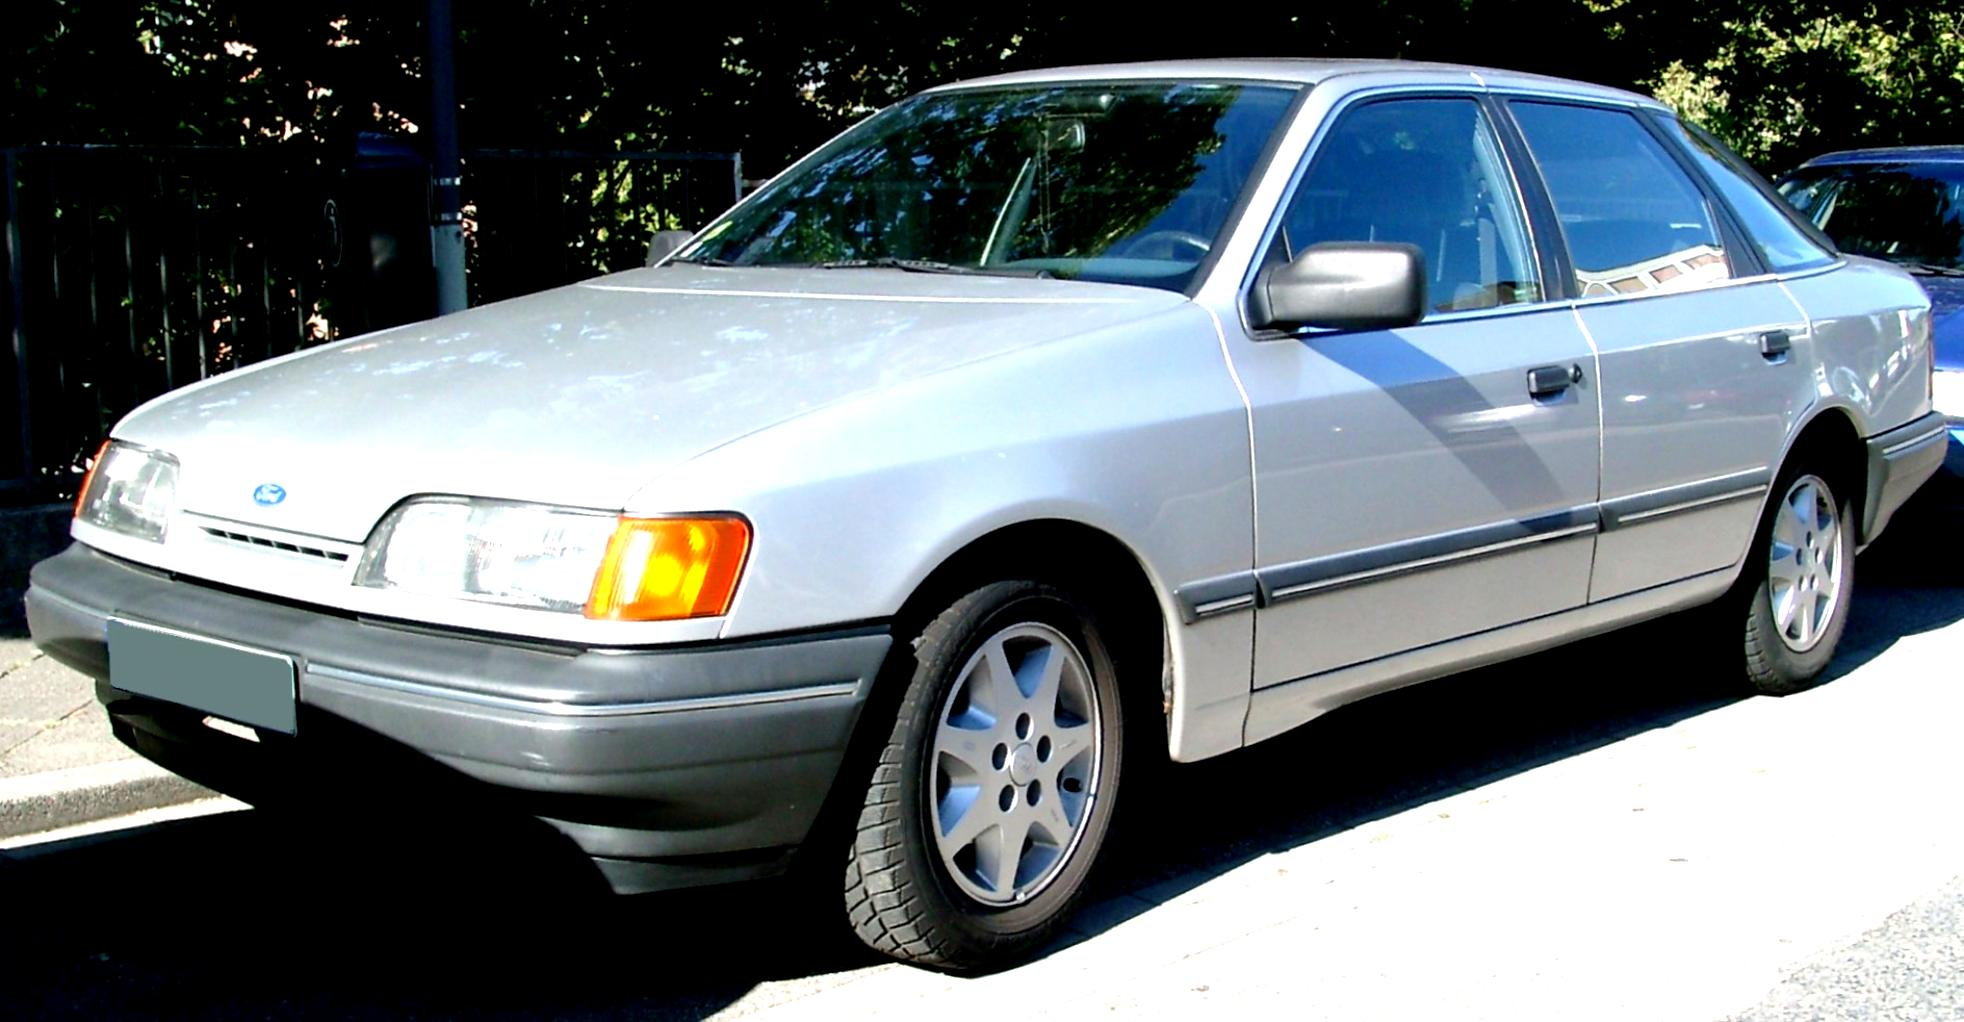 Ford Scorpio Wagon 1994 #35